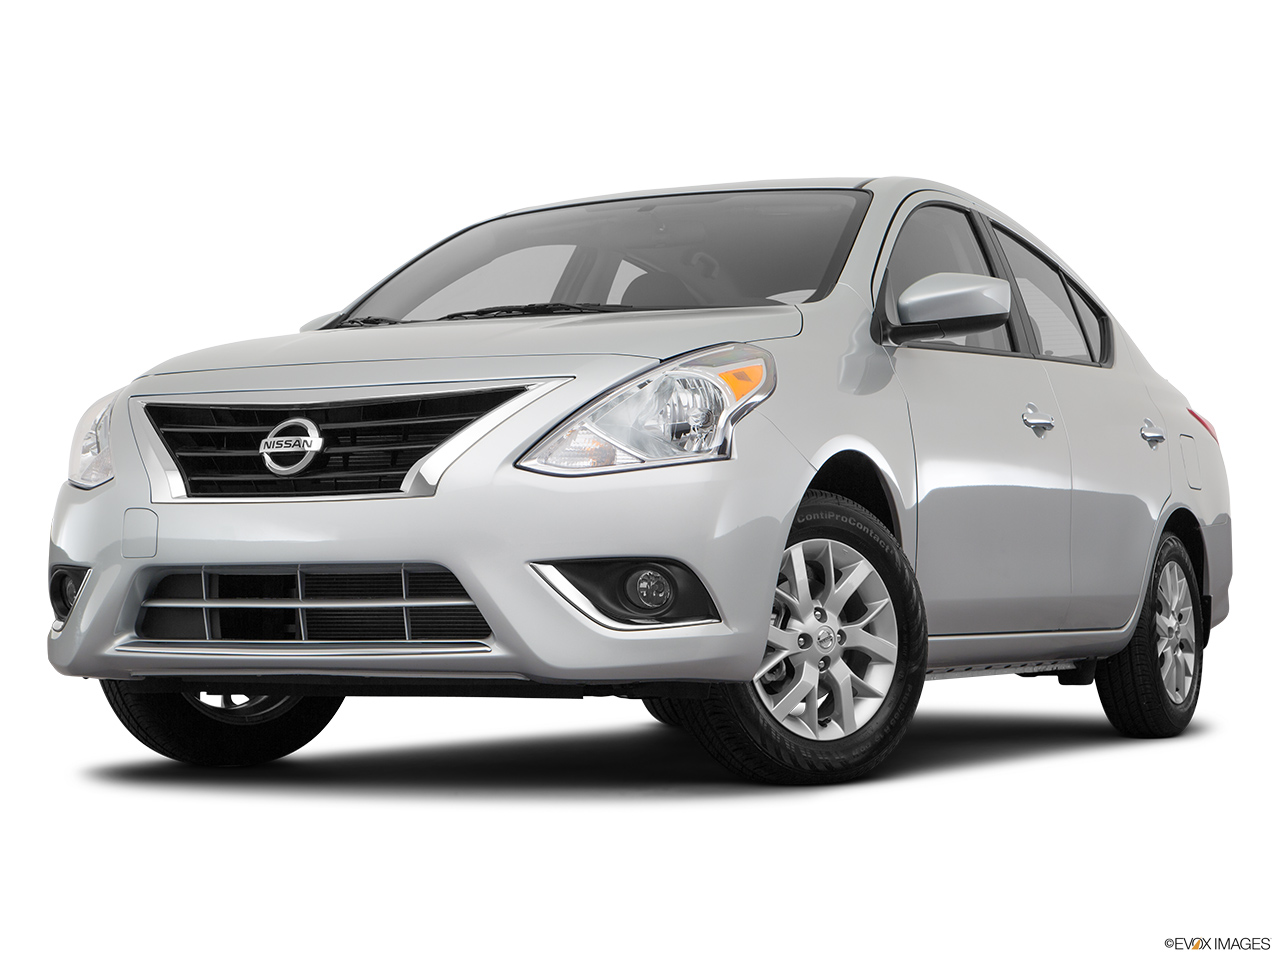 2017 Nissan Sunny Prices In Uae Gulf Specs Reviews For Dubai